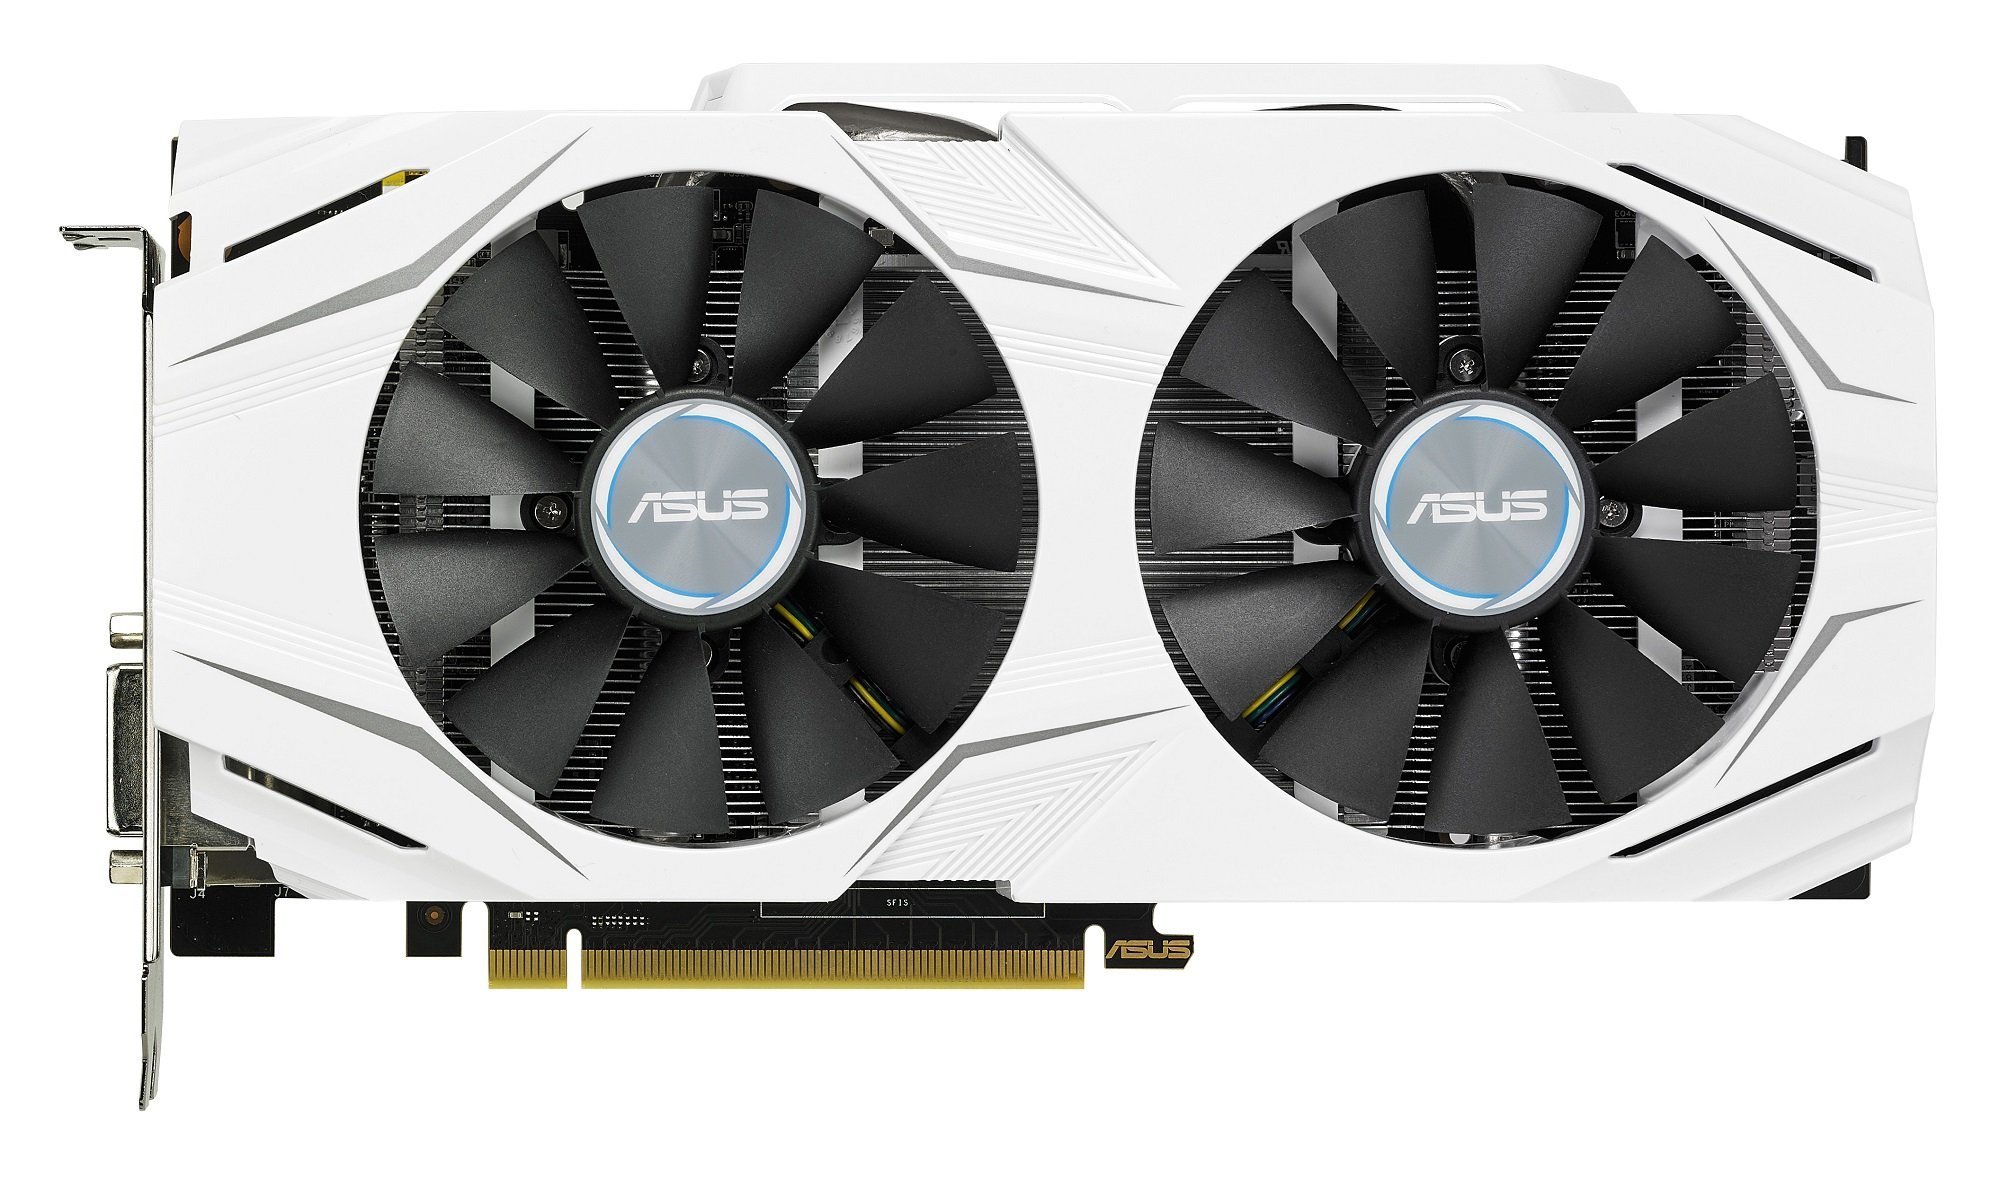 ASUS GeForce GTX 1060 6GB Dual-fan OC Edition VR Ready Dual HDMI DP 1.4 Gaming Graphics Card (DUAL-GTX1060-O6G) by Asus (Image #2)